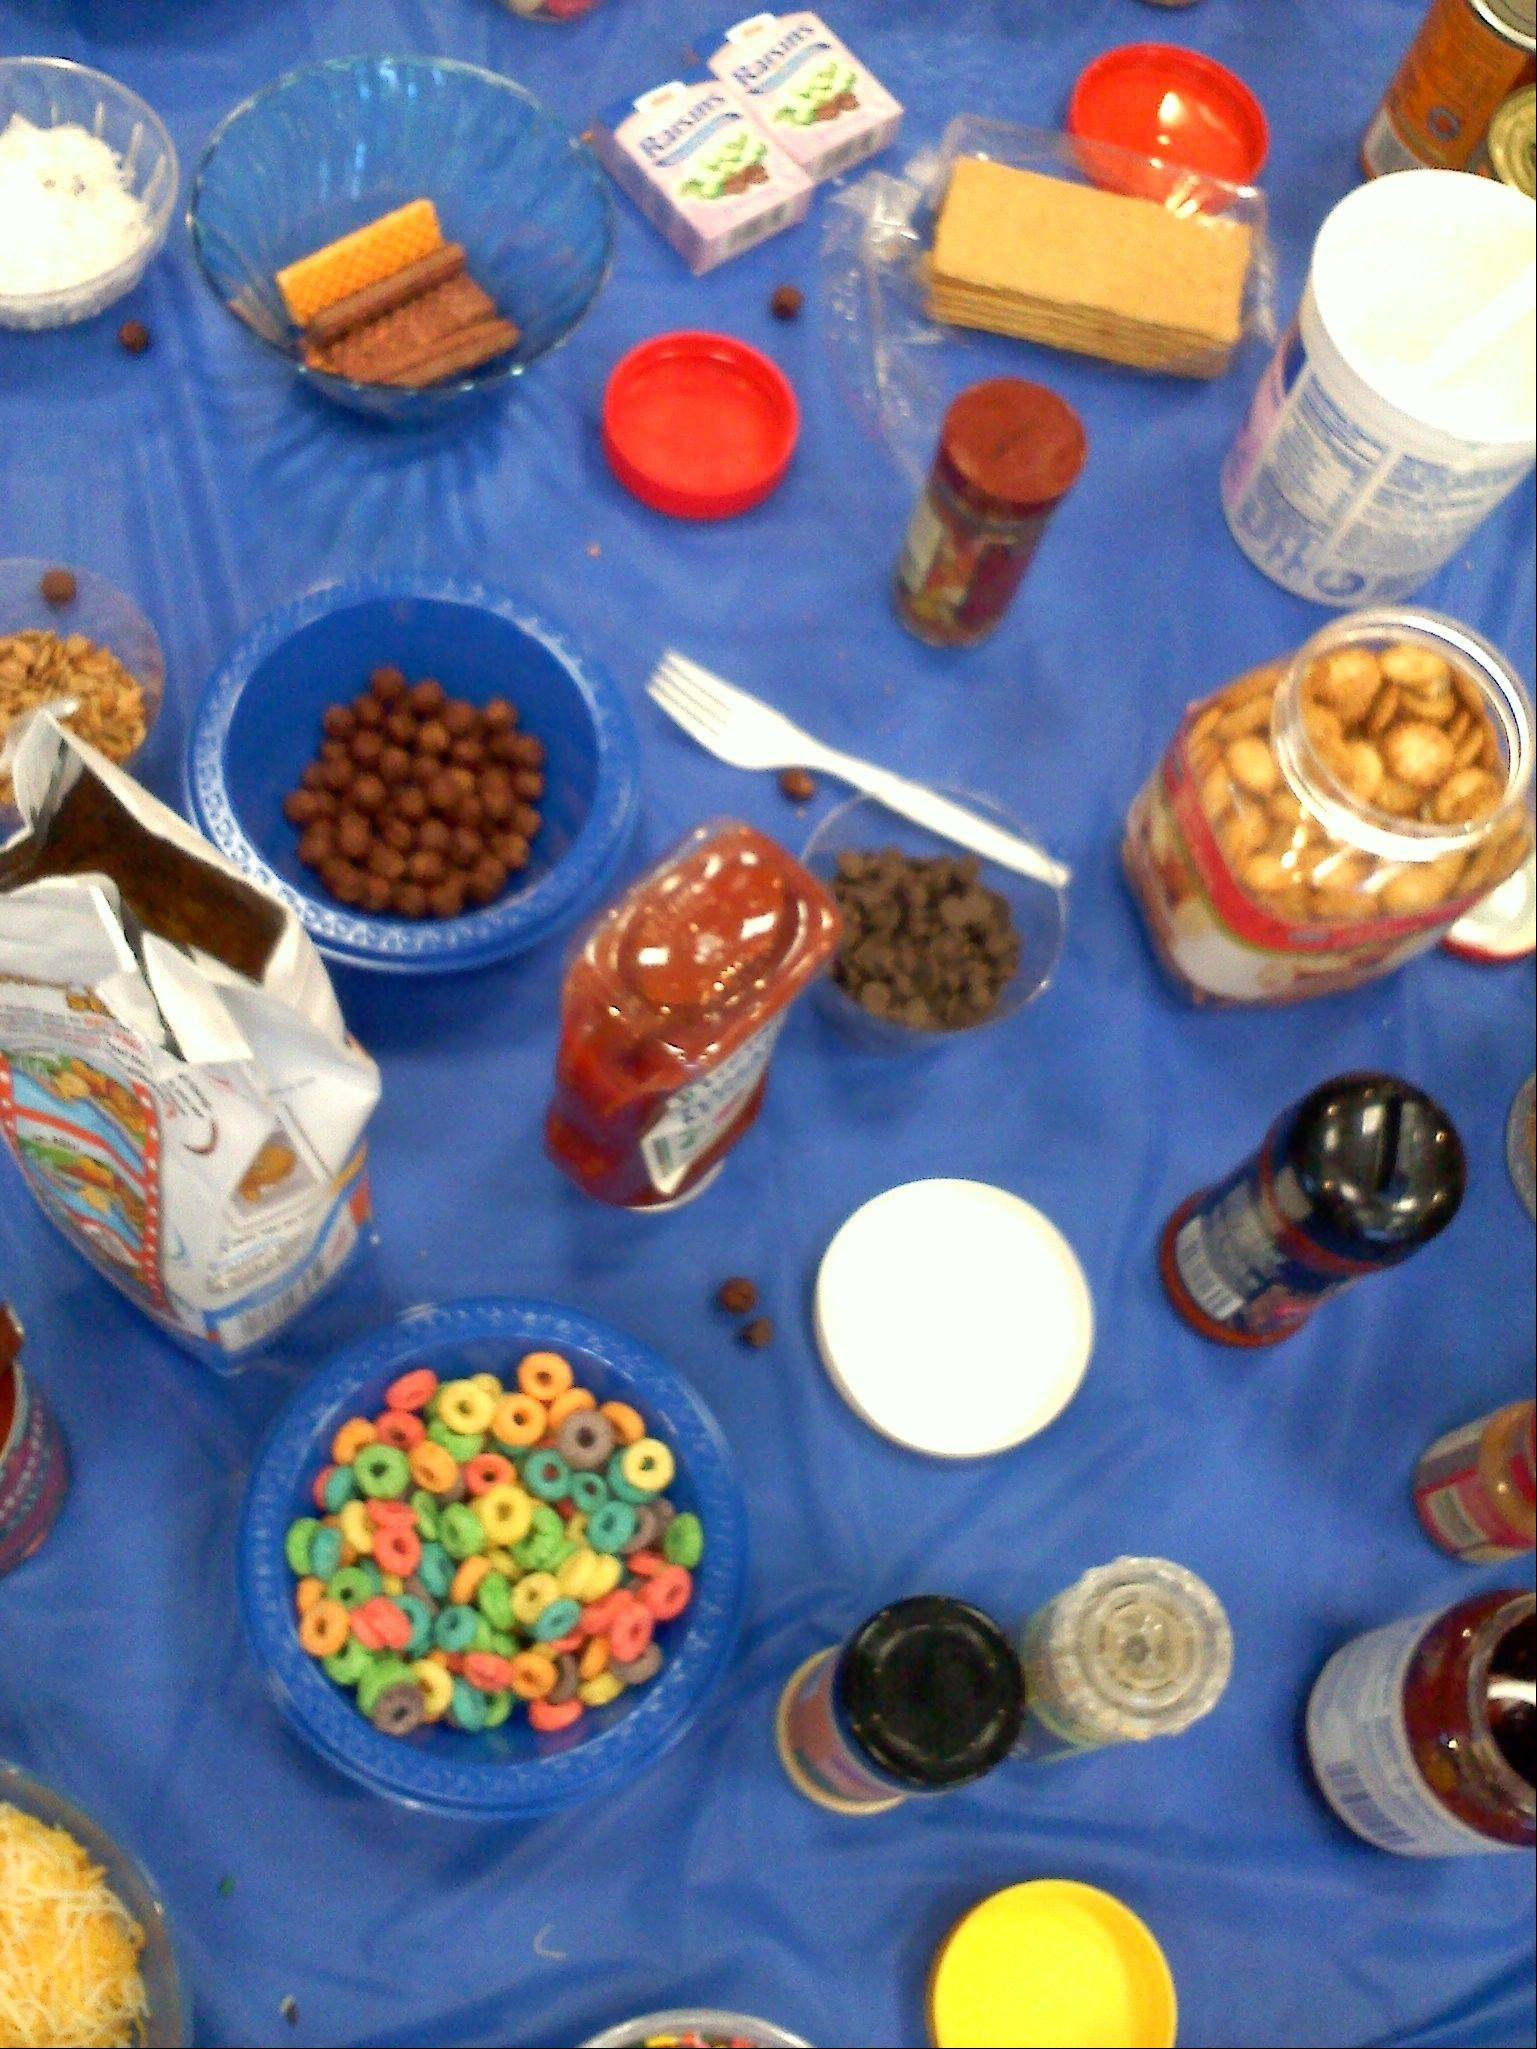 Teen cooks had to use cucumbers and any number of items from this eclectic pantry to create after-school snacks.